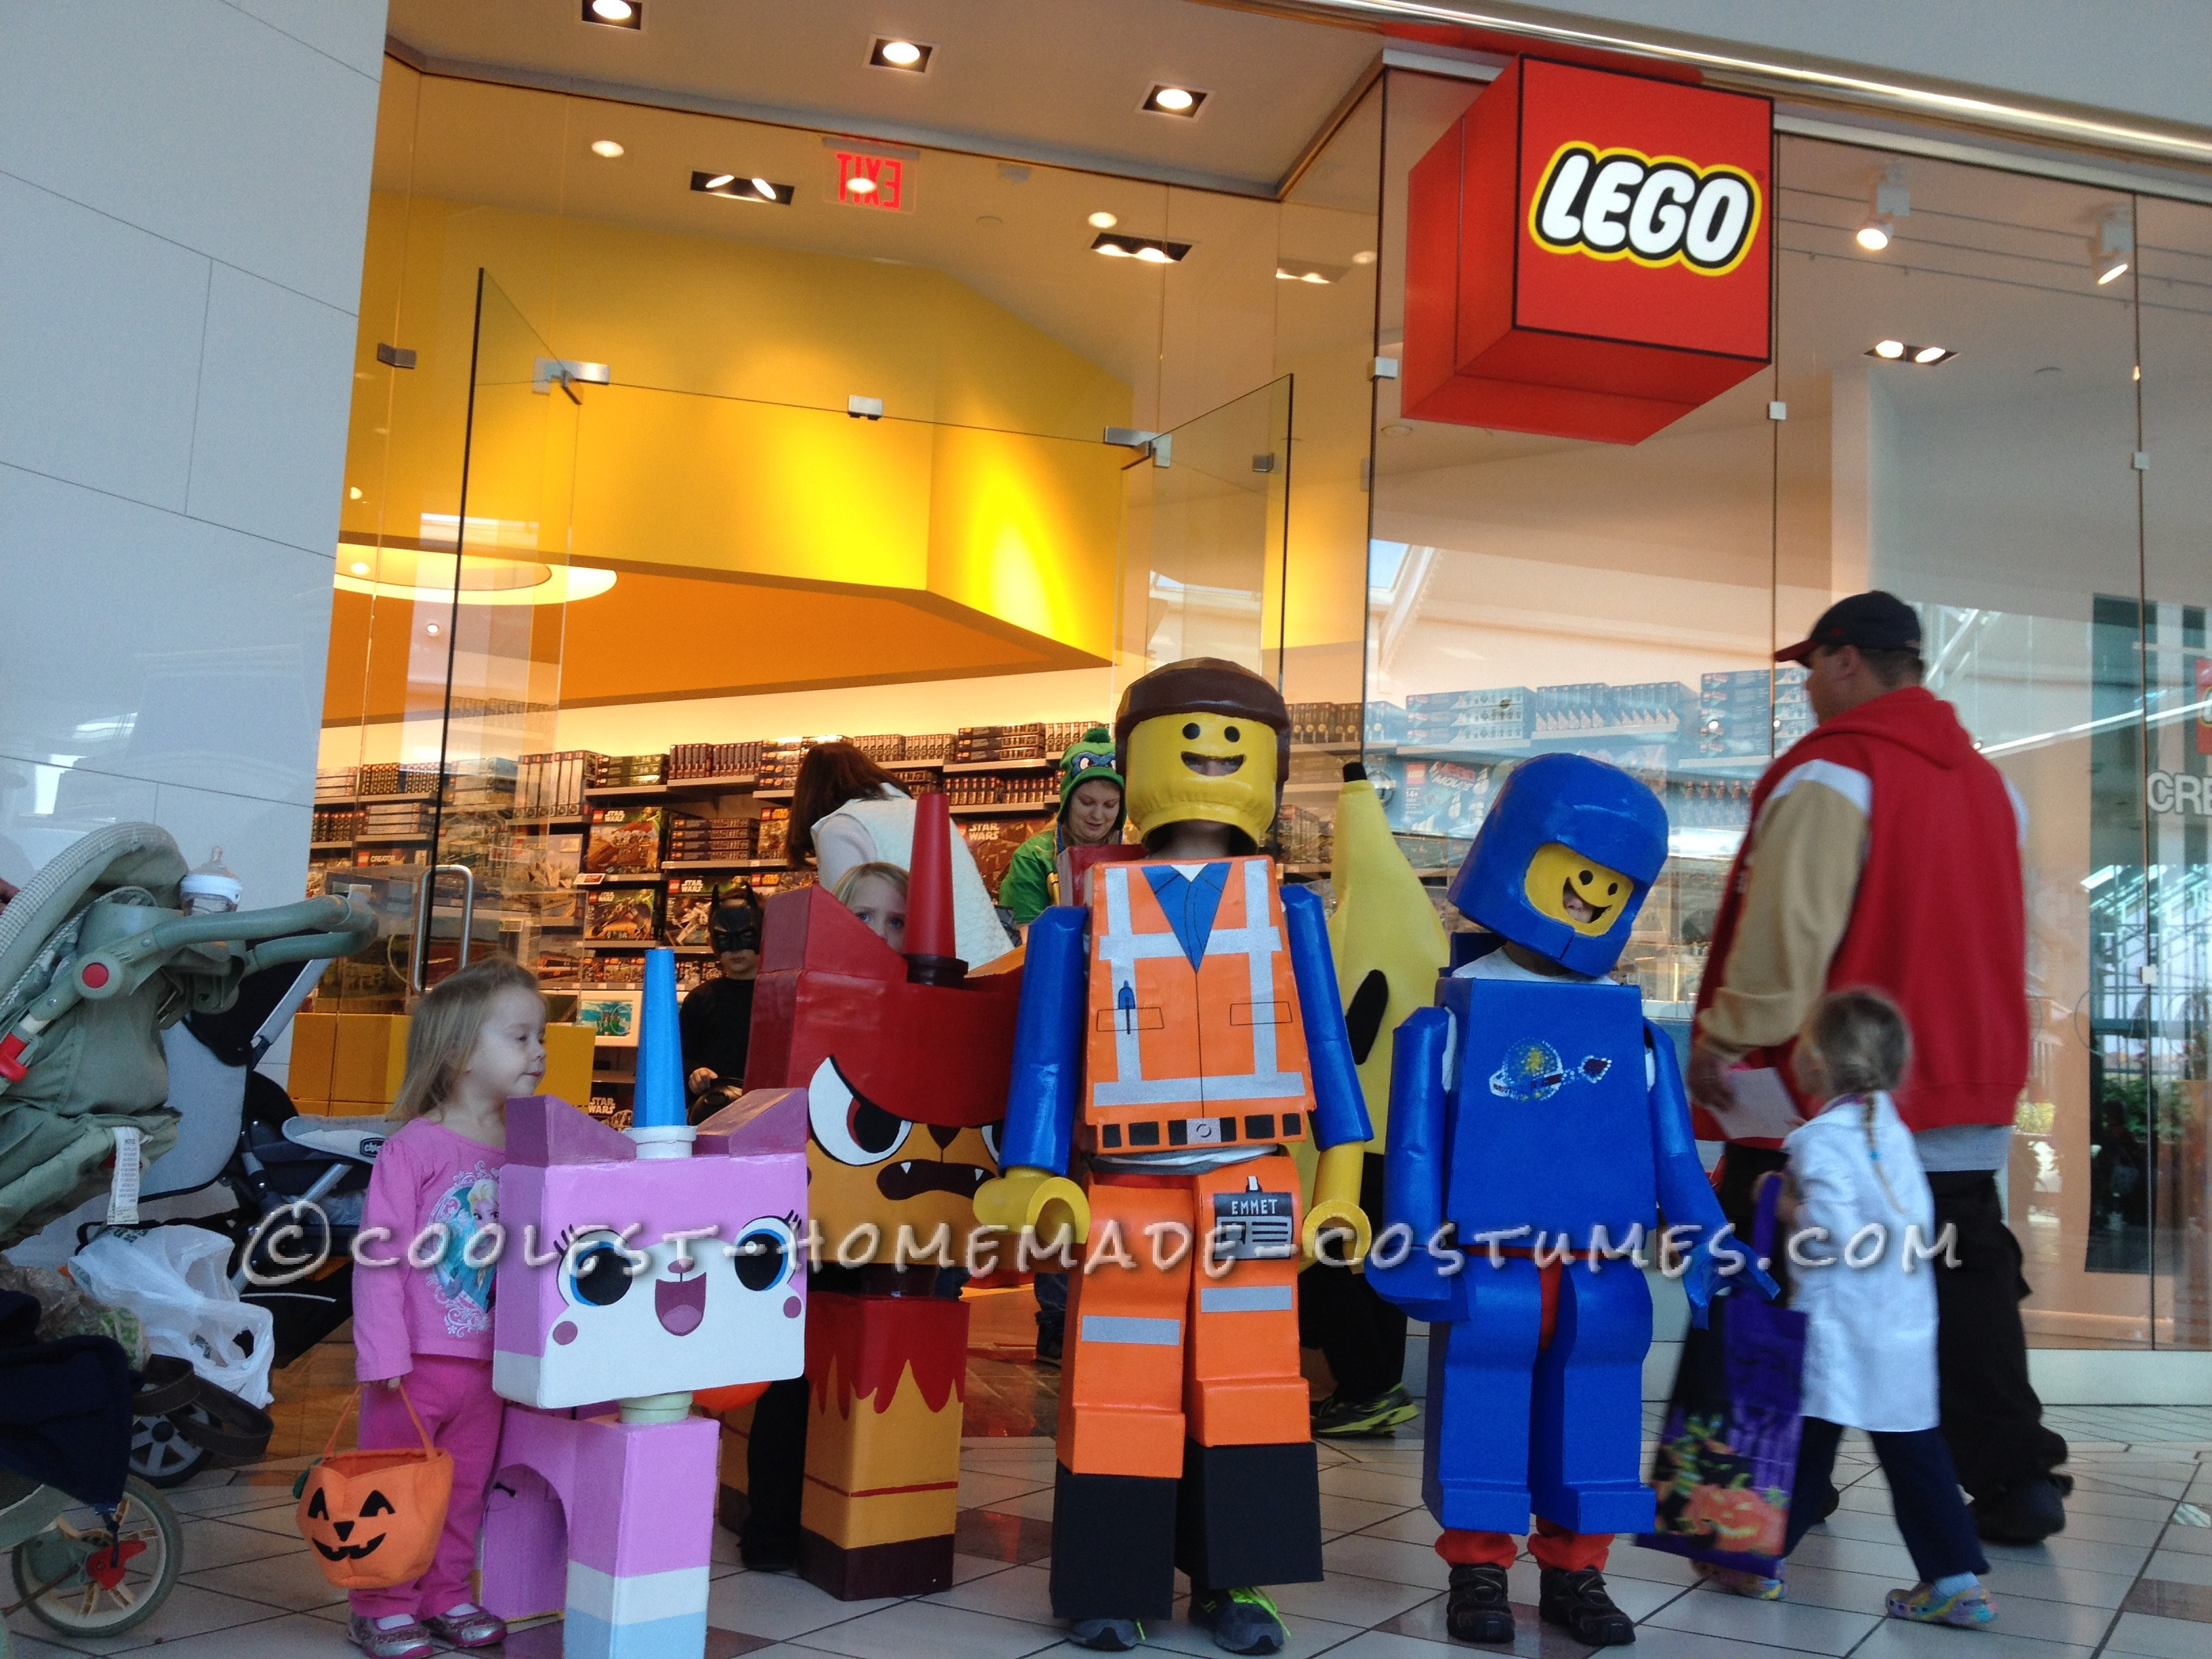 Lego's Come To Life Group Costume